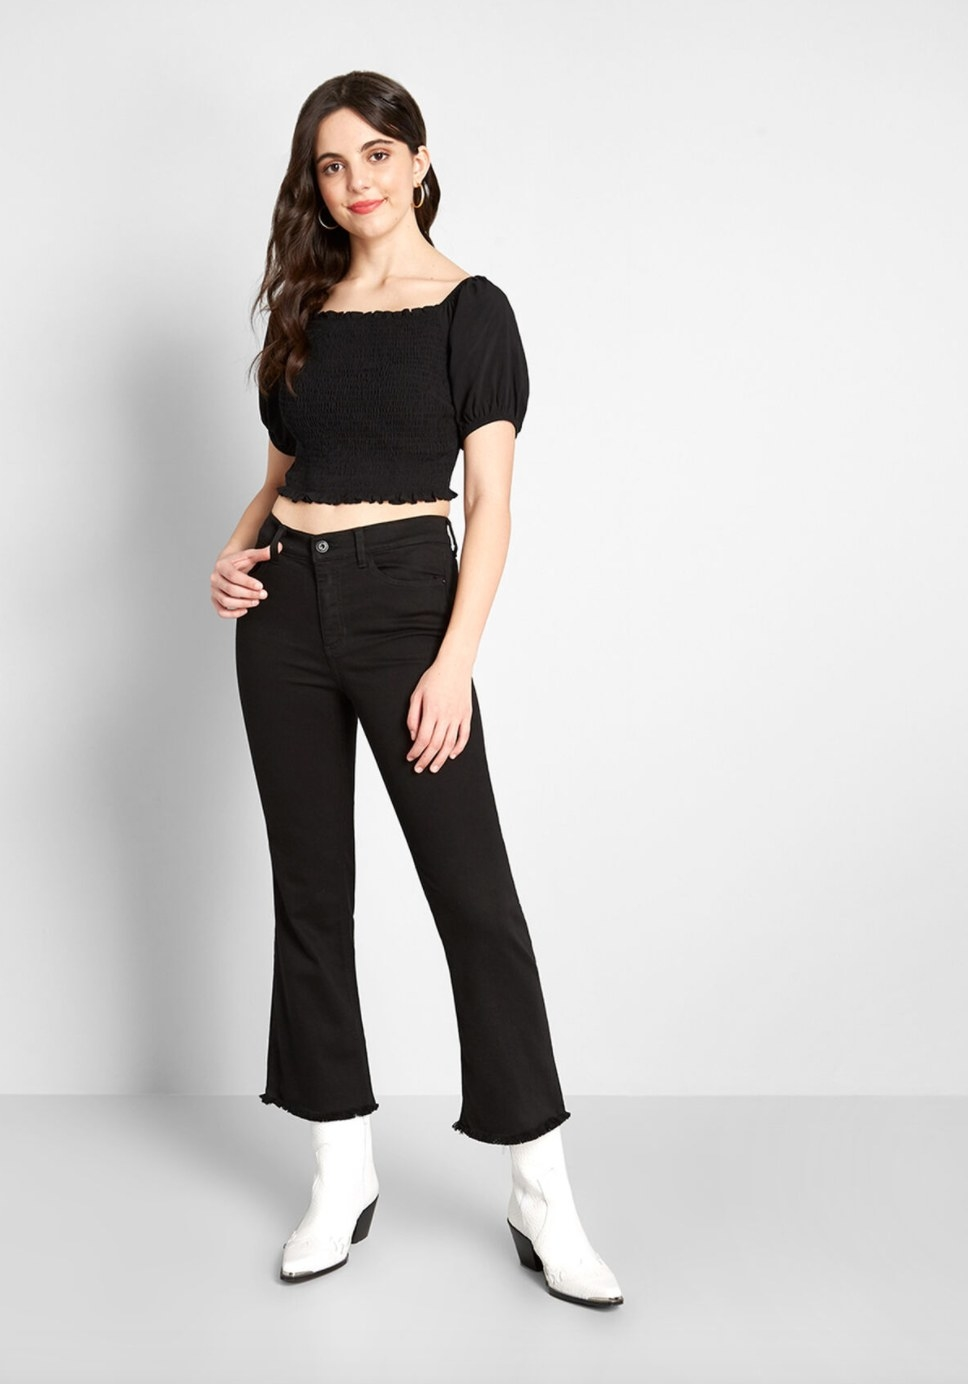 Model wearing the flared jeans